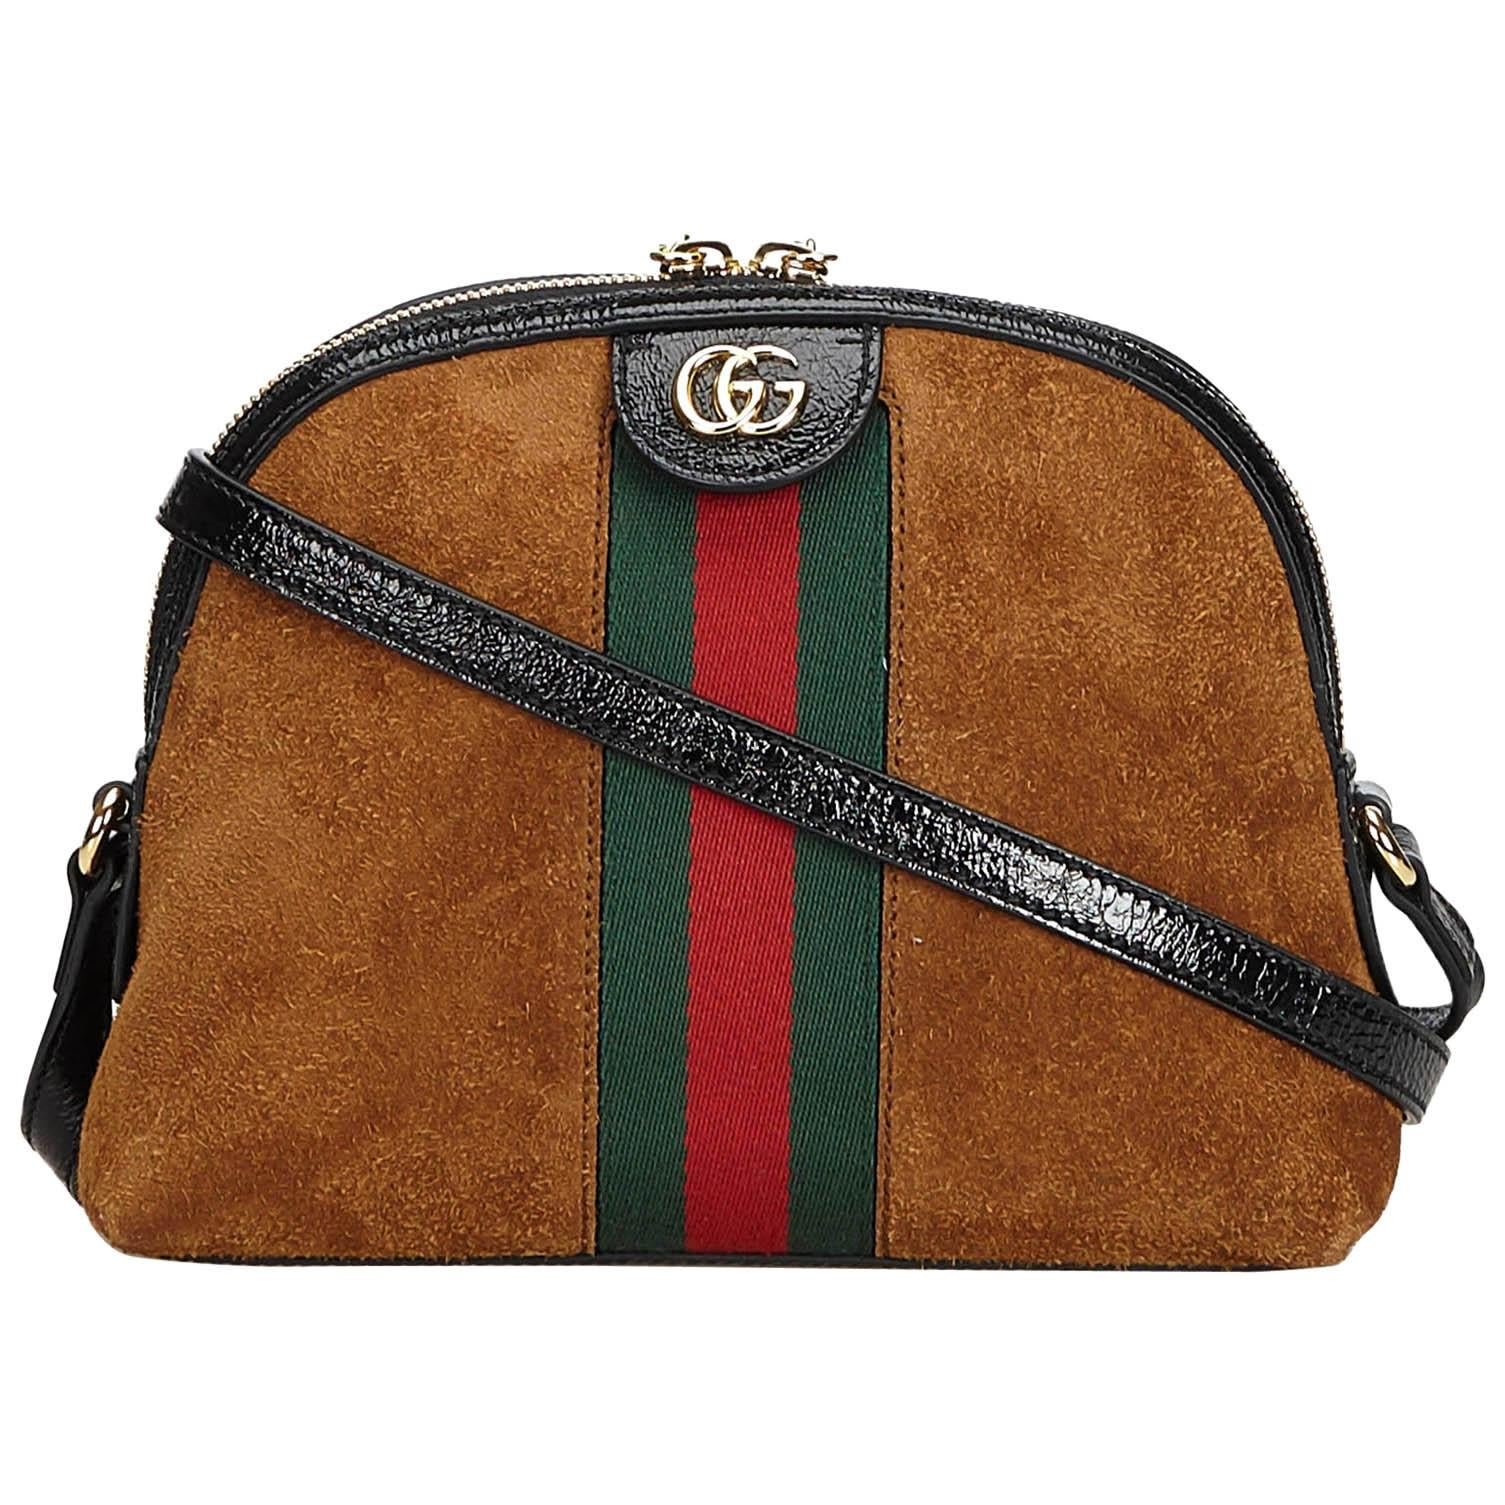 7705ff5290c0 Vintage Gucci Handbags and Purses - 2,055 For Sale at 1stdibs